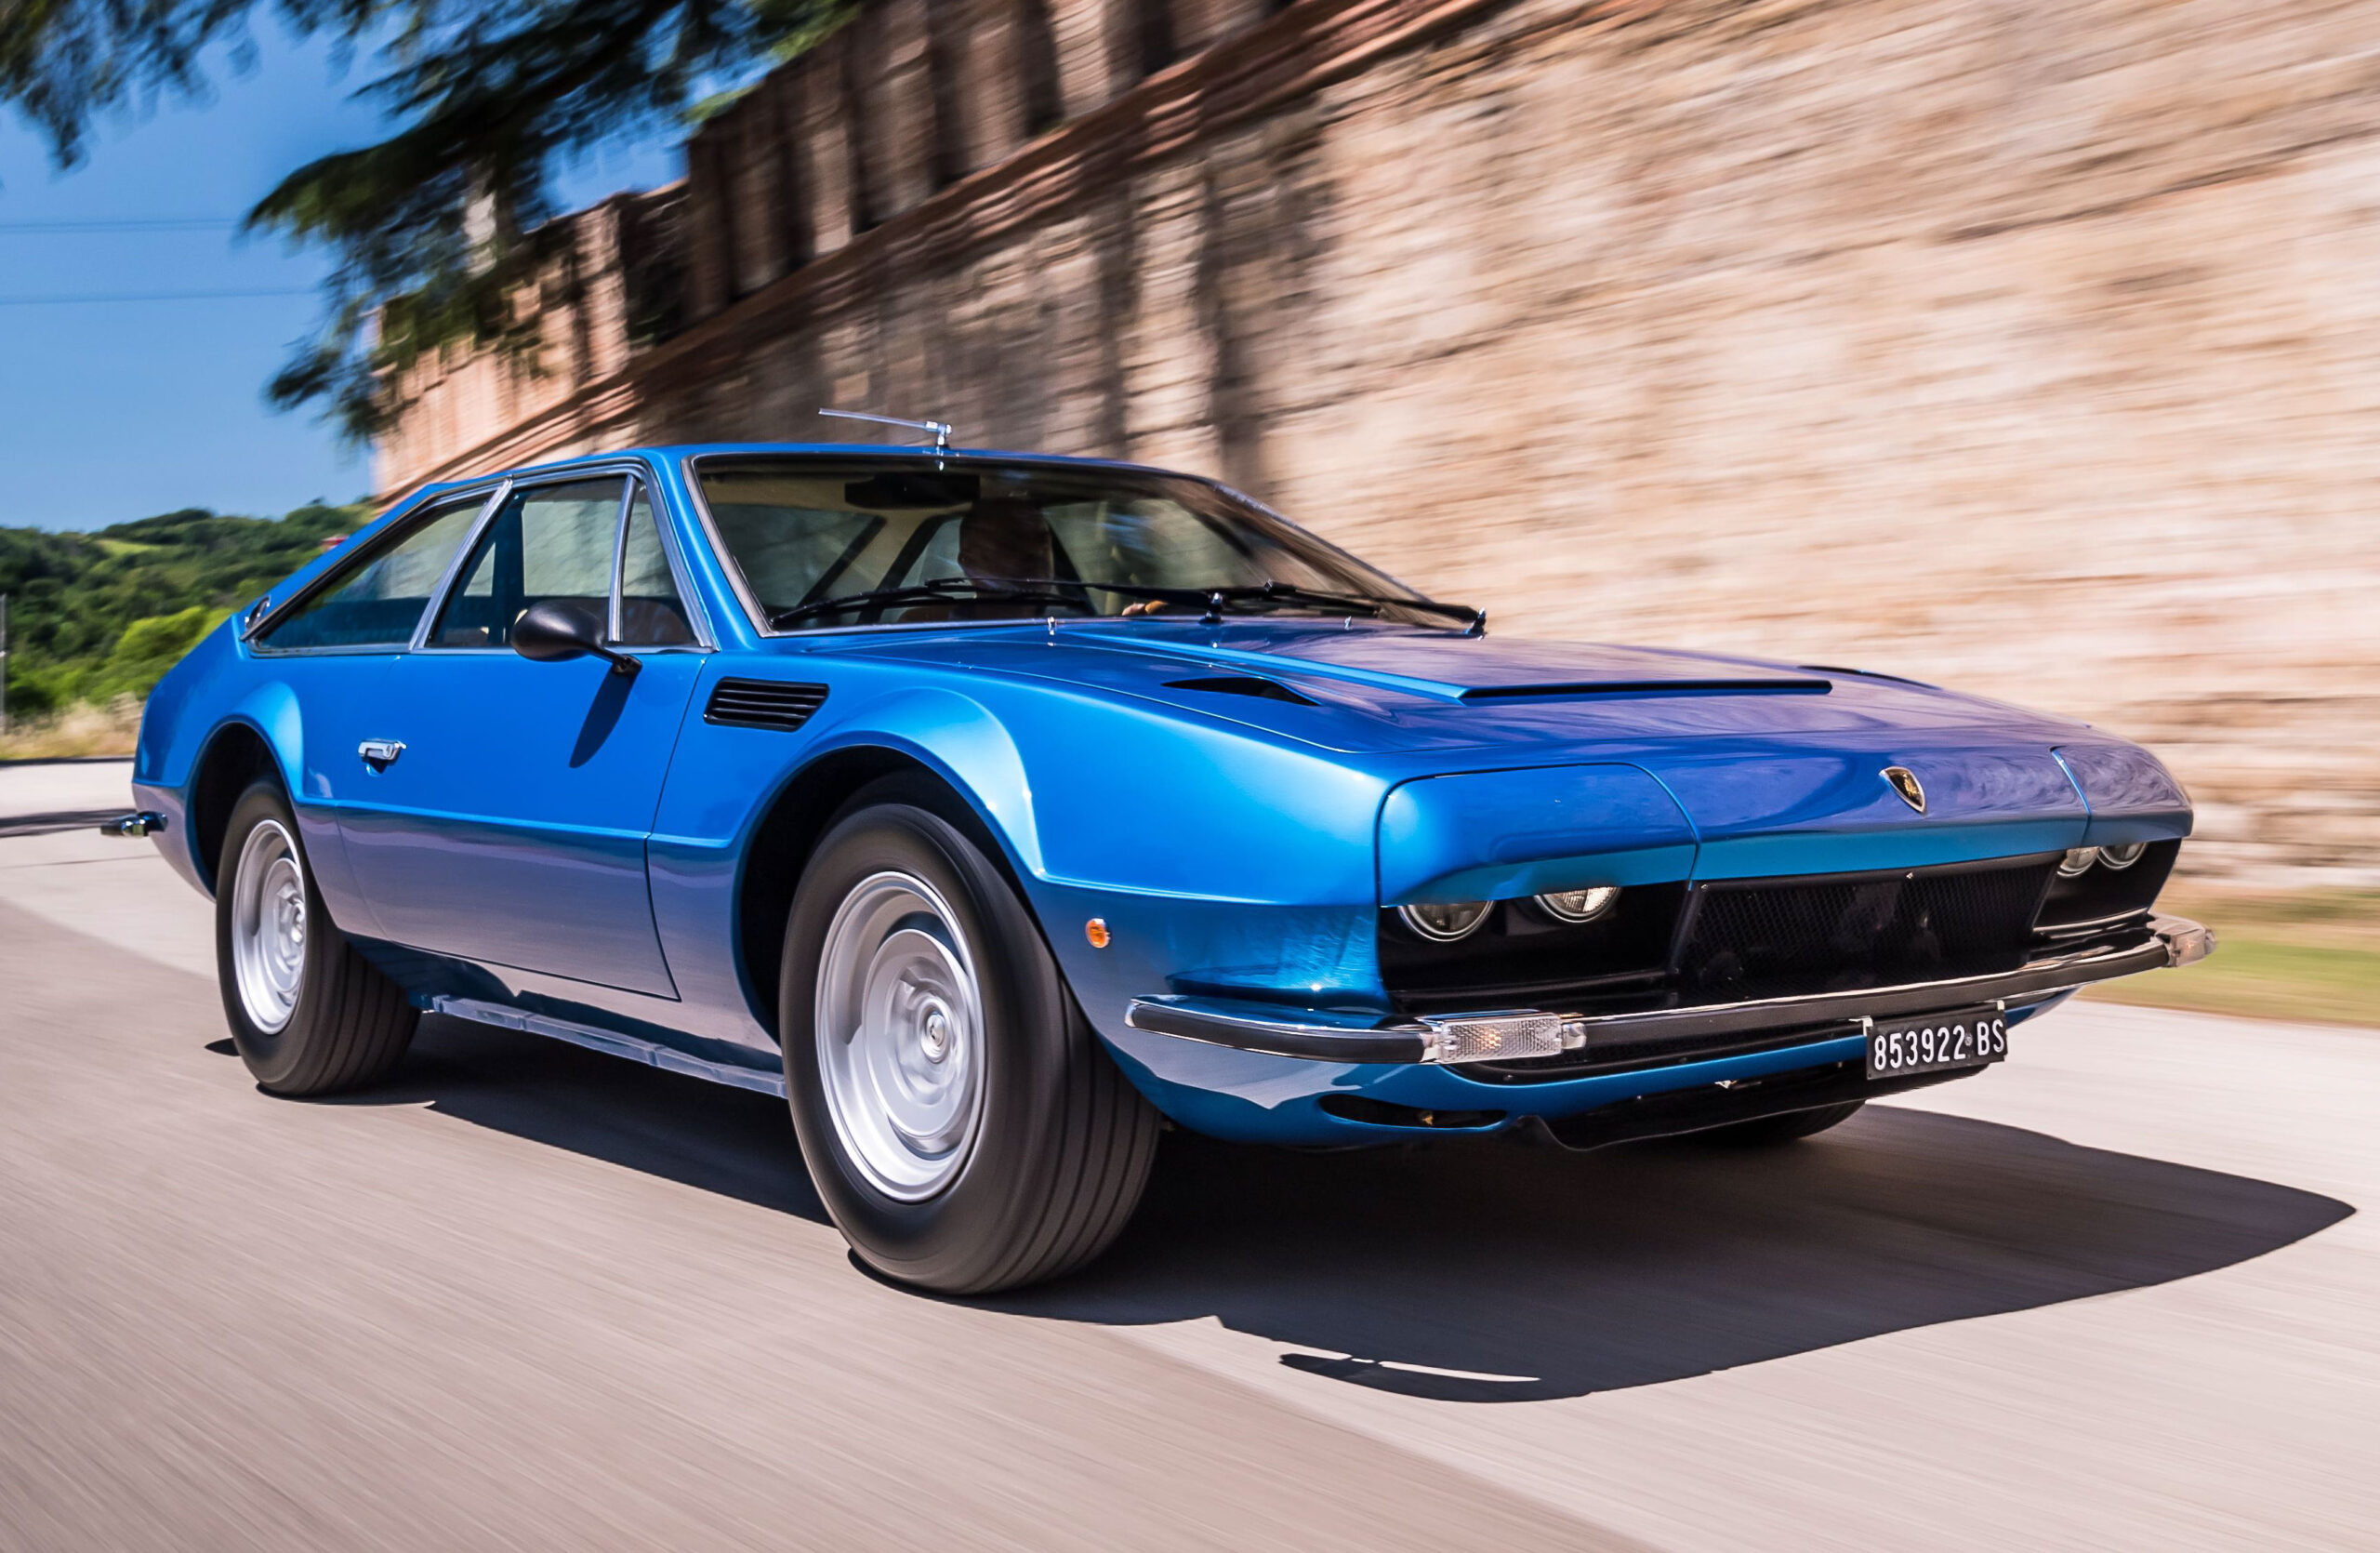 The Jarama, whose name derives from an area north of Madrid famous for breeding fighting bulls, was the latest evolution of the company's 2+2 grand touring sedan concept, with a V12-cylinder, 4-liter front-mounted engine. Units produced - Lamborghini Jarama GT: 1970-1973, 176, Lamborghini Jarama GTS: 1972-1976, 152